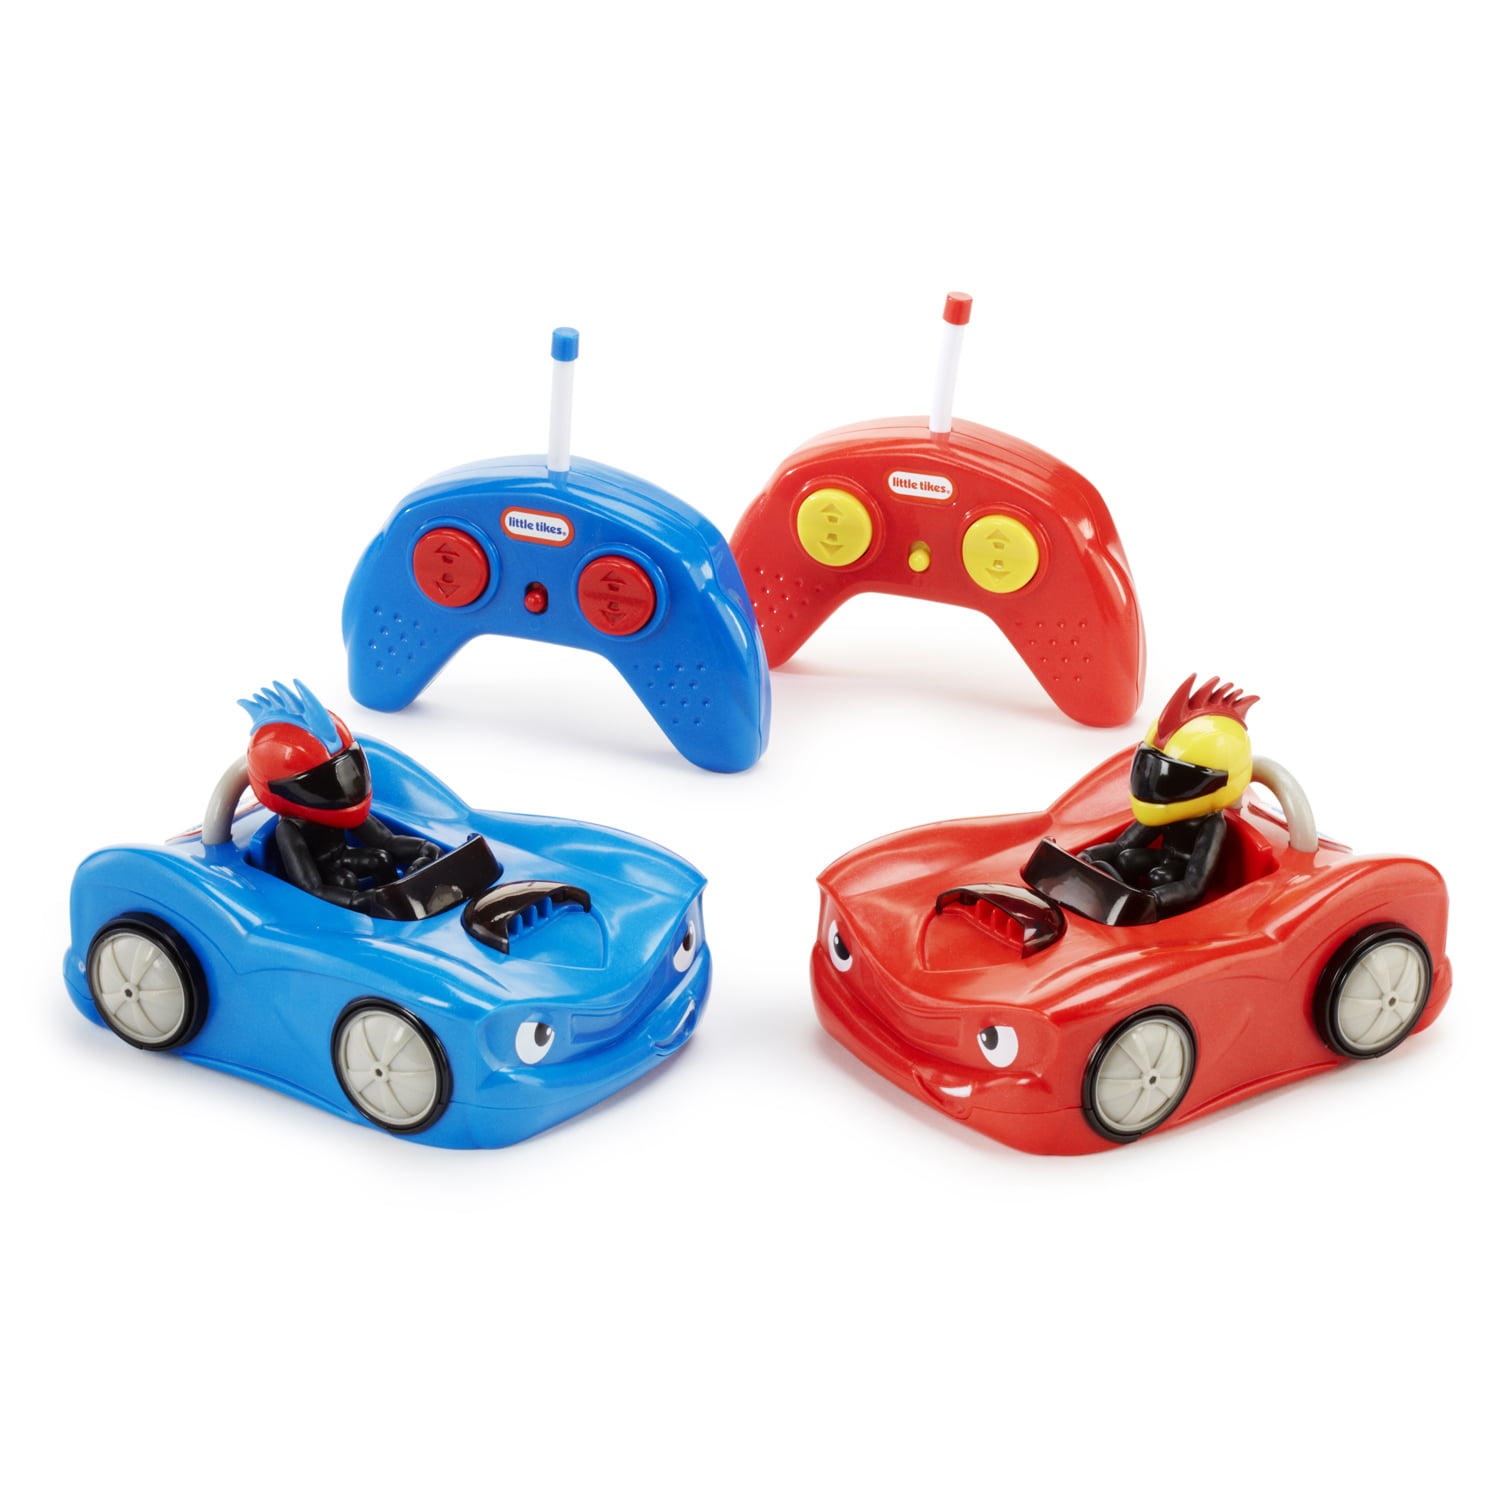 Little Tikes RC Bumper Cars Set of 2 by Little Tikes